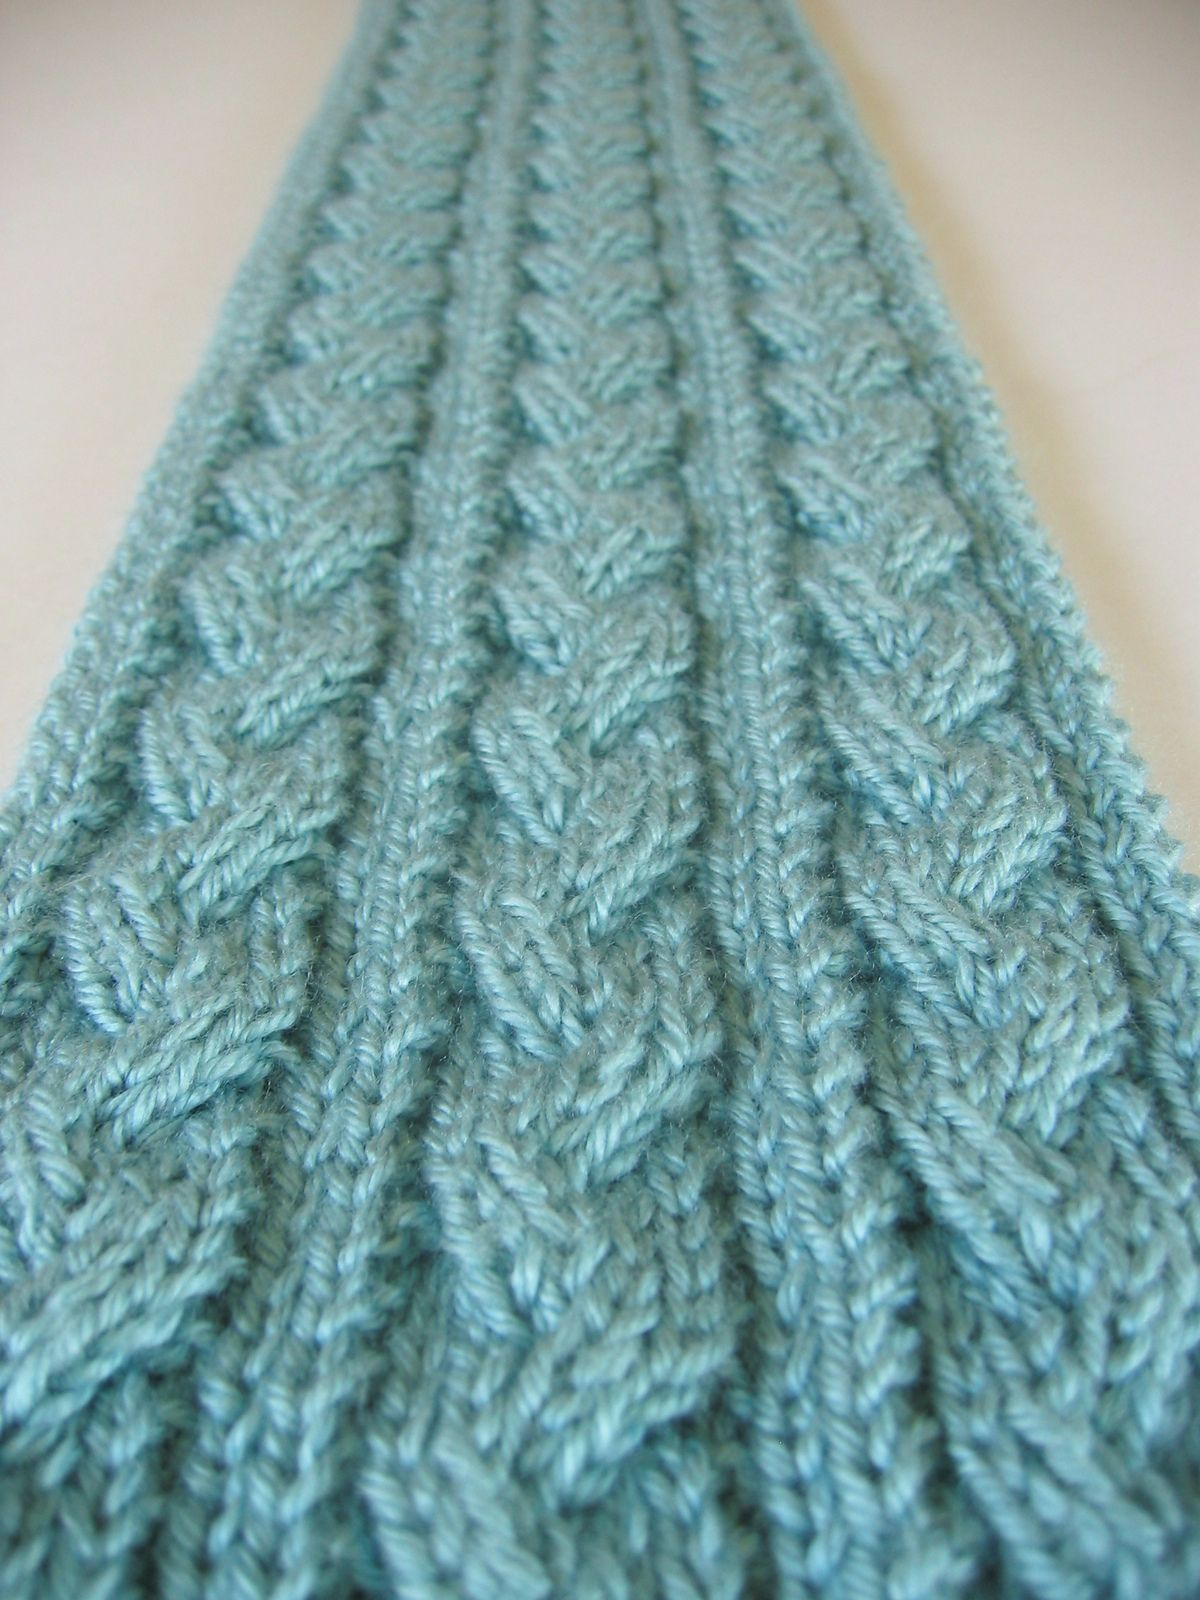 Braid Cable Scarf free knitting pattern. Note: repeat step one * to ...